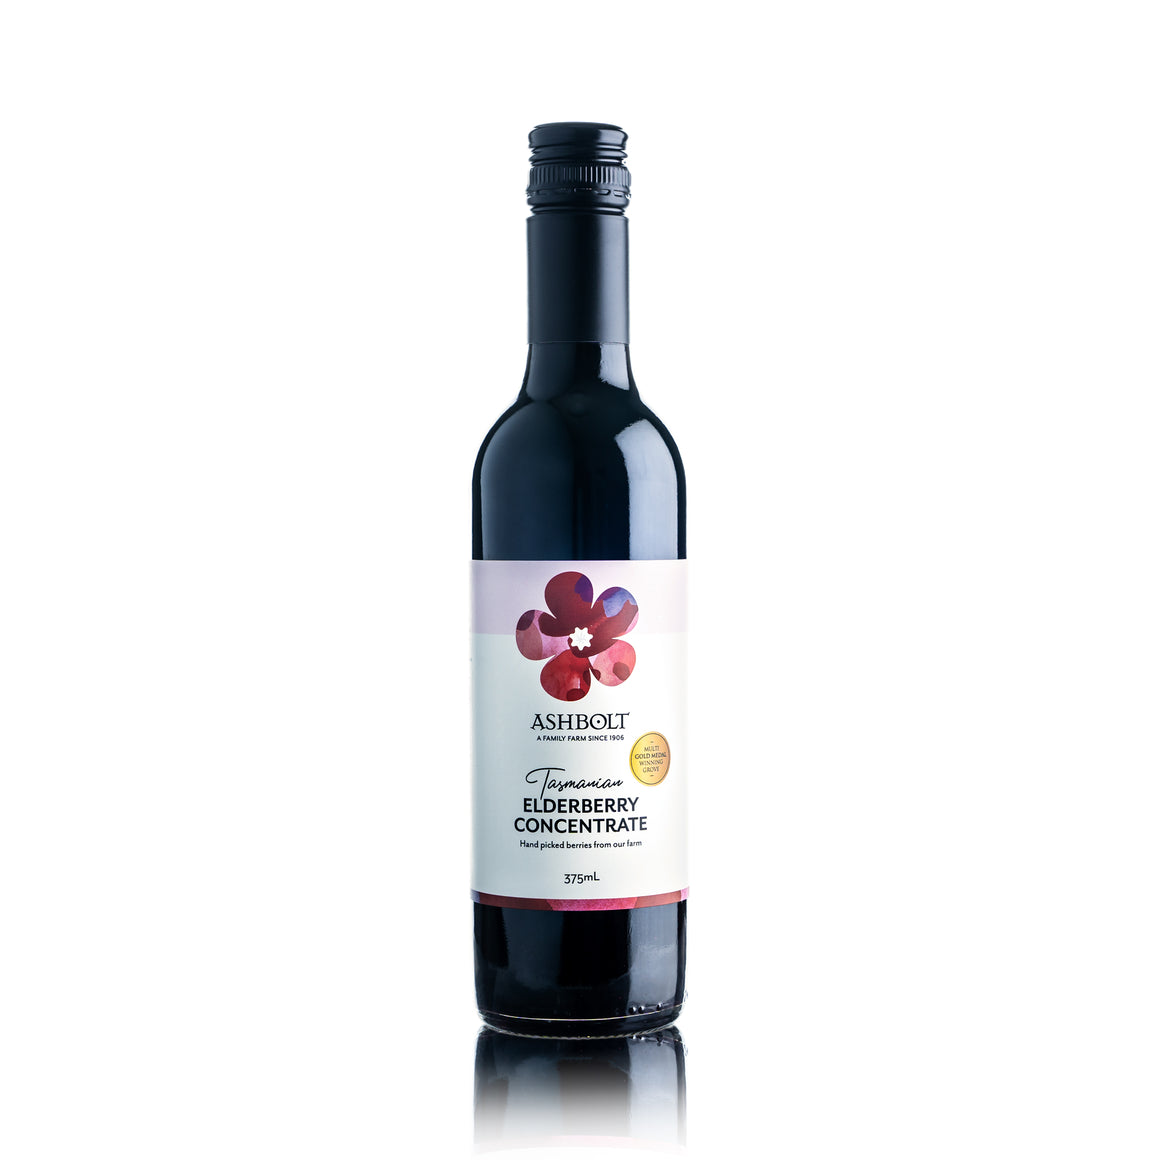 375ml of Tasmanian Elderberry Concentrate sweetened